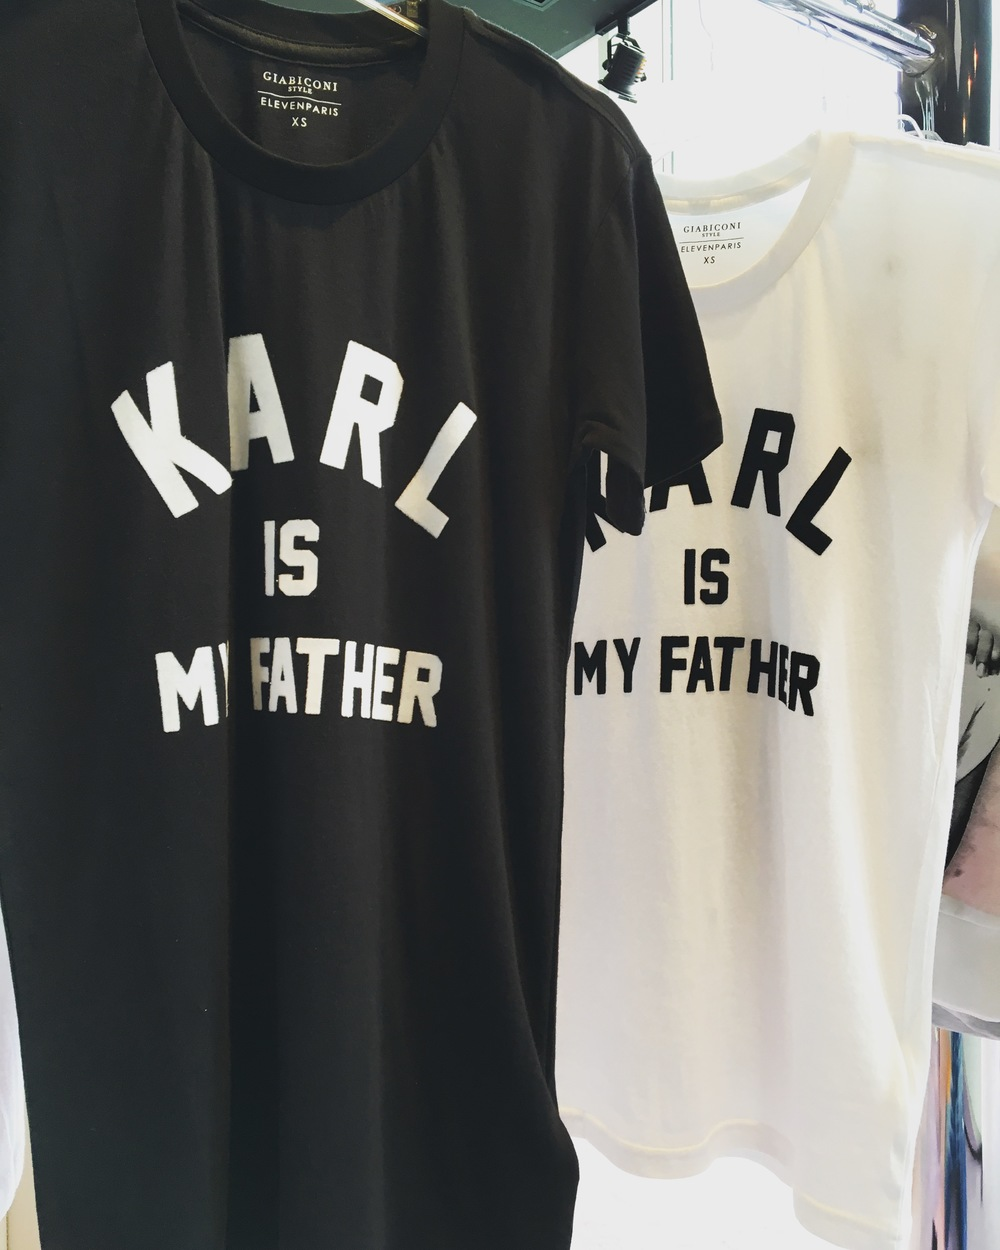 ELEVEN PARIS | Karl is my father tee